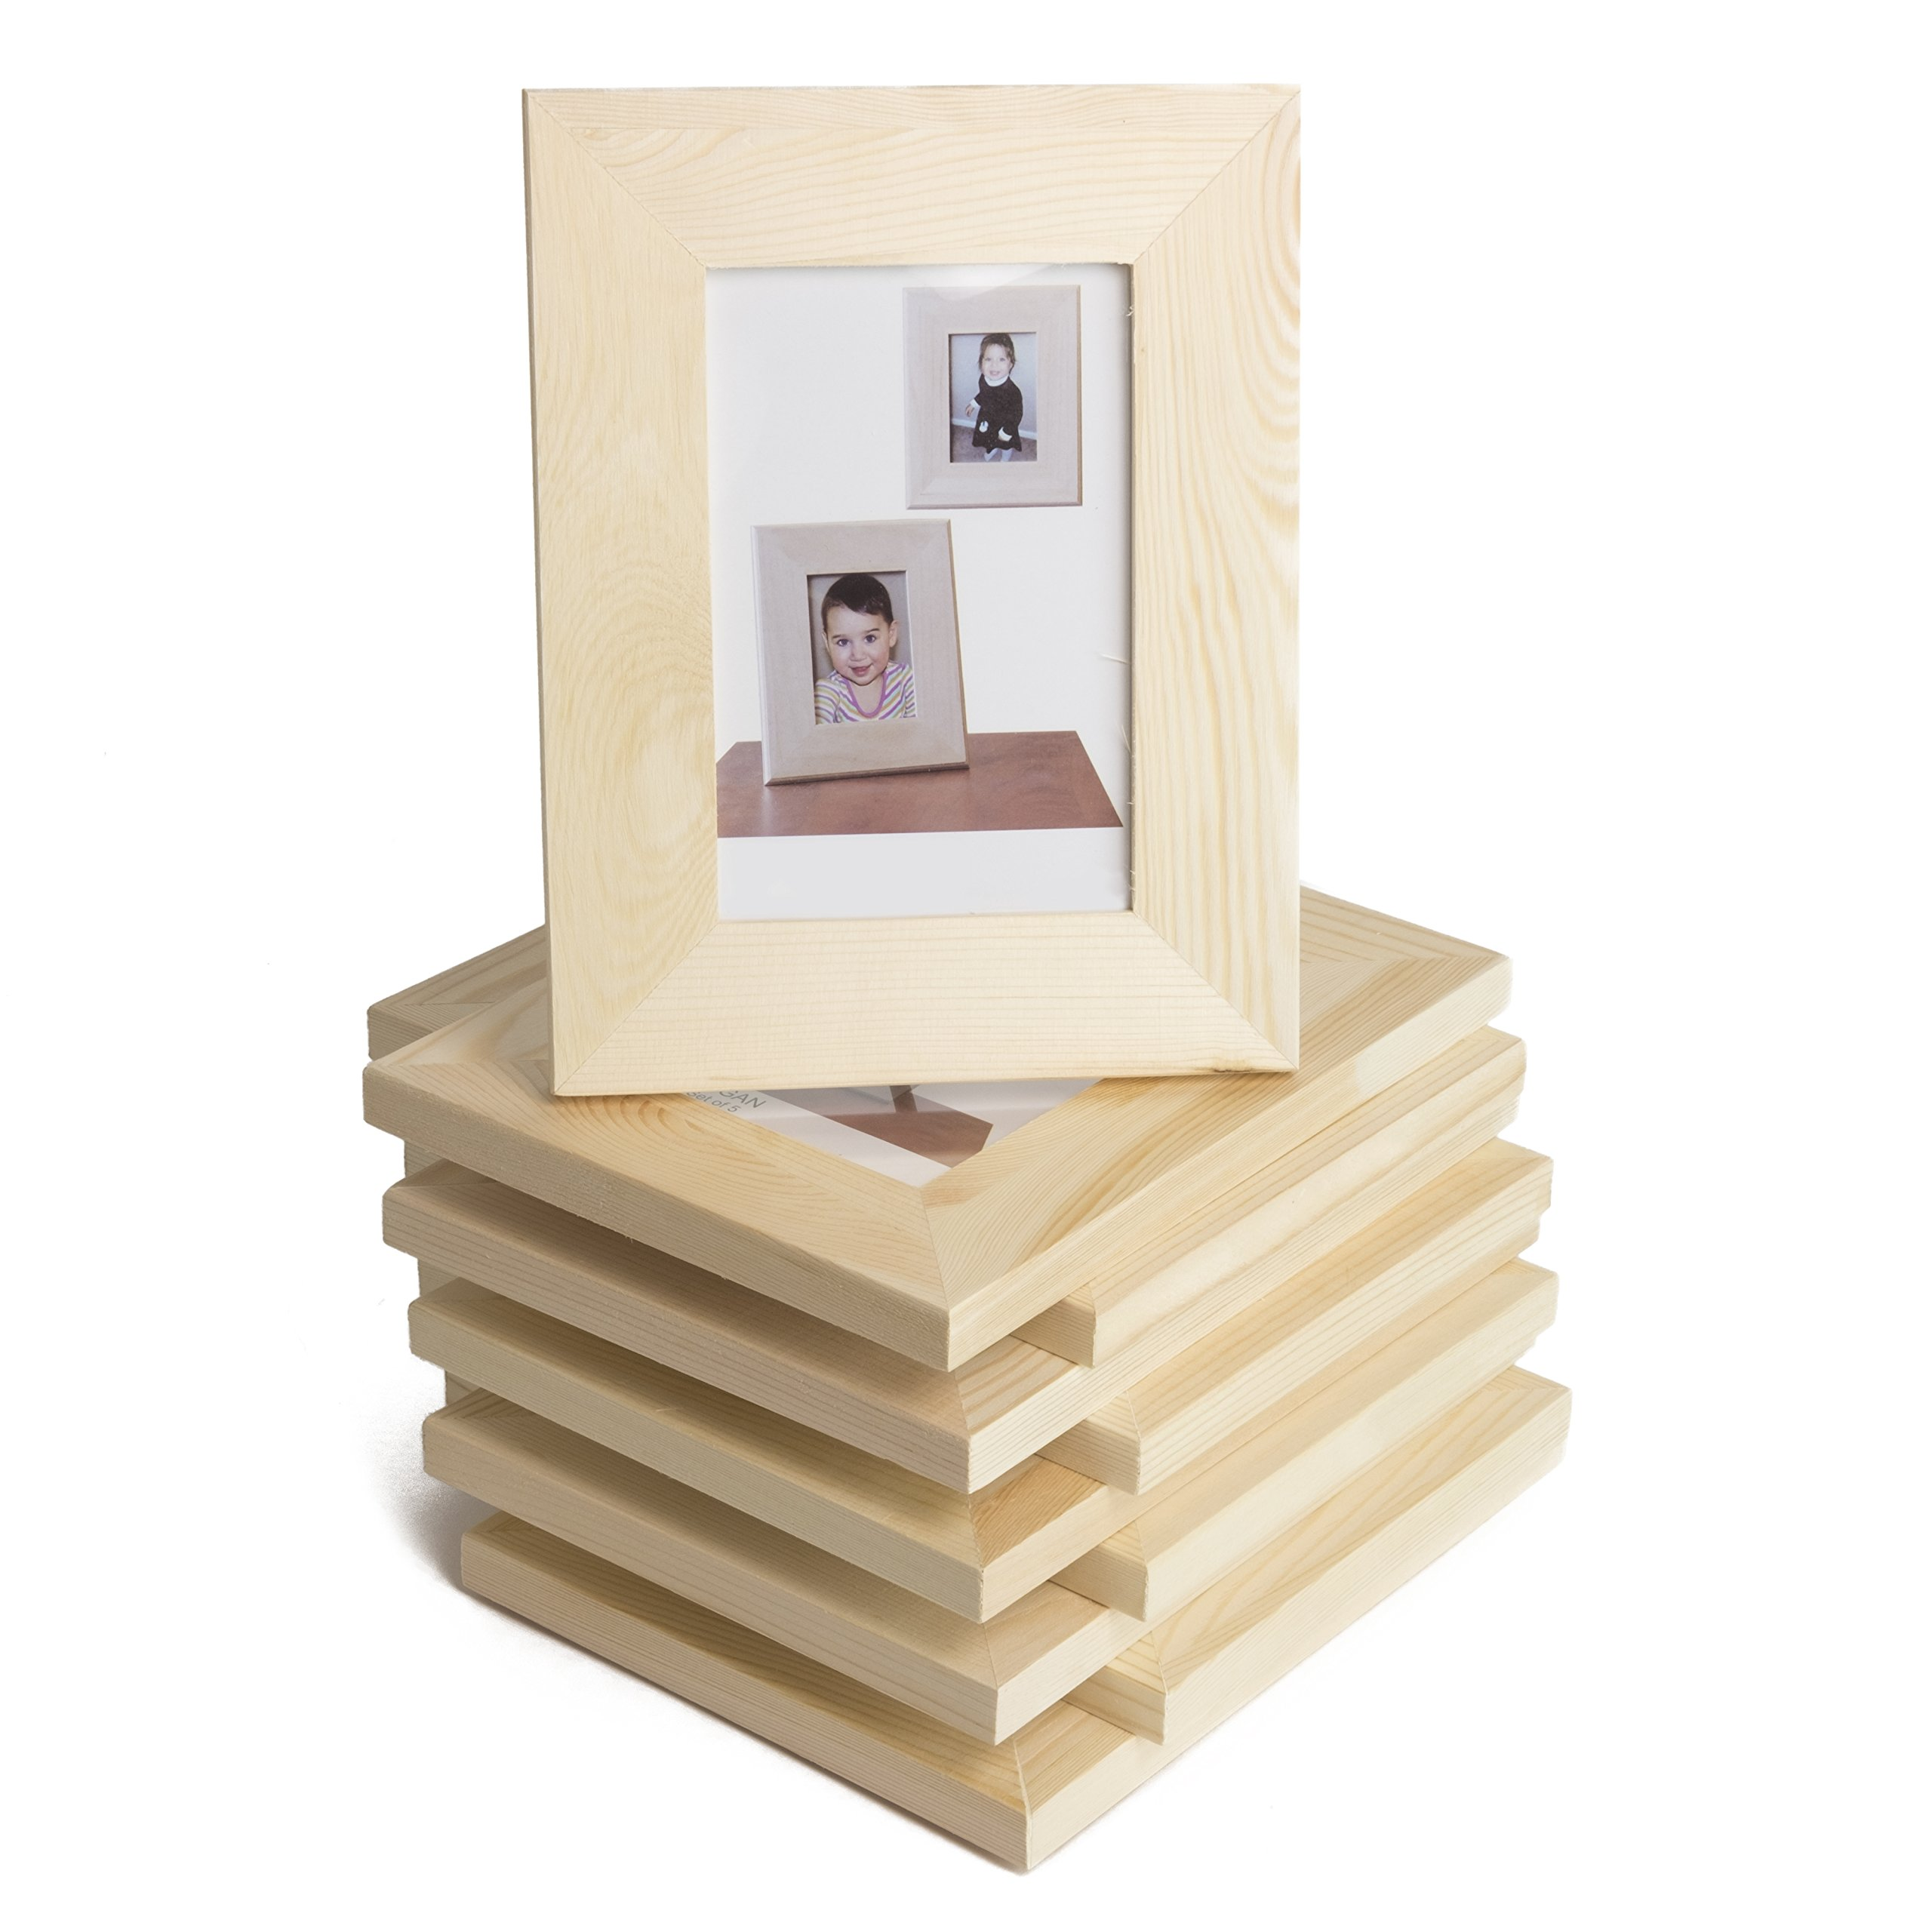 WALLNITURE Kid's DIY Projects Picture Frames Crafting Unfinished Wood 4x6 Set of 10 by Fasthomegoods (Image #1)